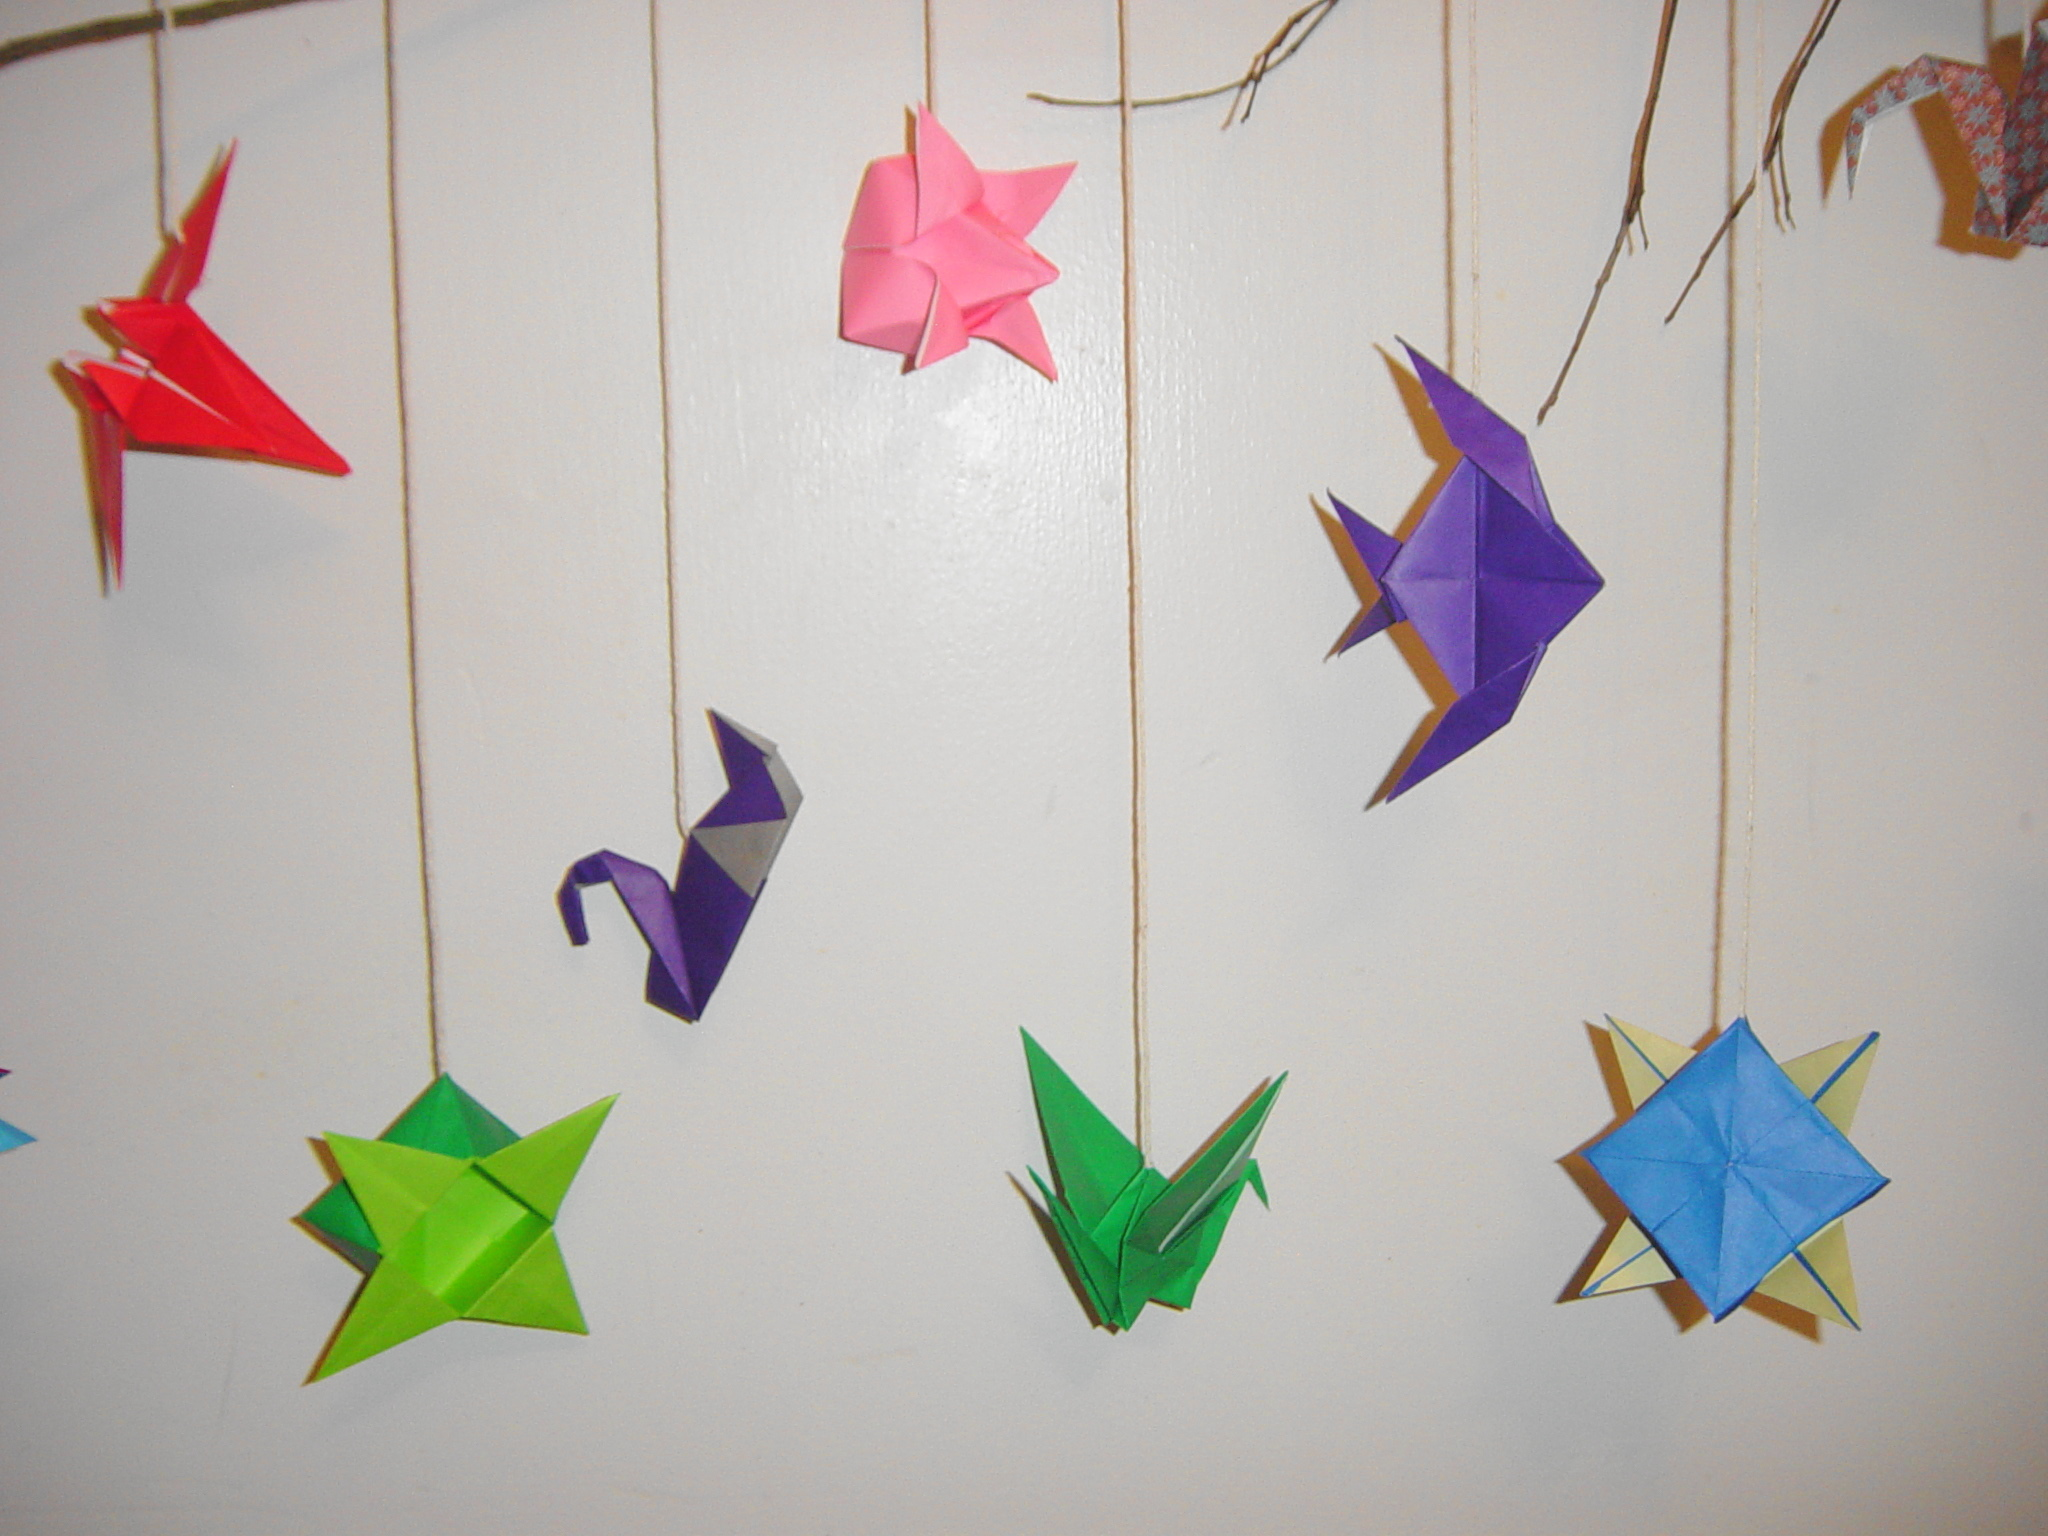 outsider japan origami art project